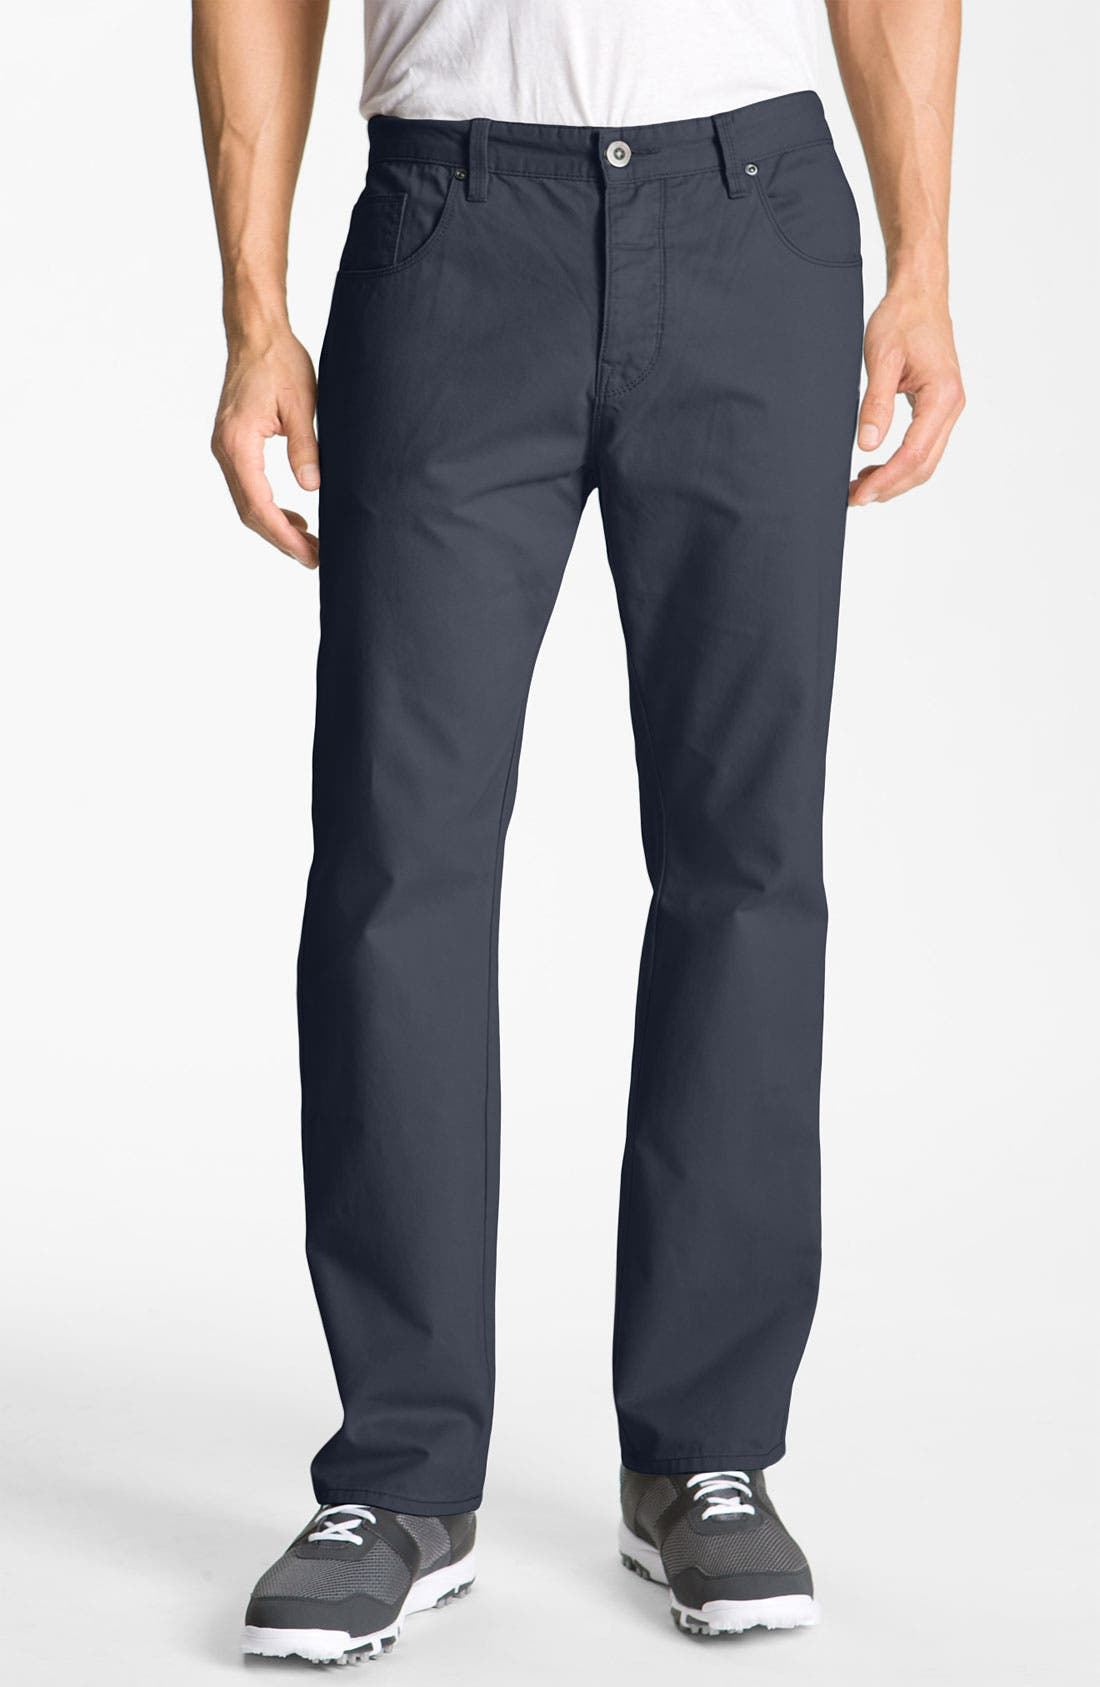 Alternate Image 1 Selected - Cutter & Buck 'Pike' Five-Pocket Pants